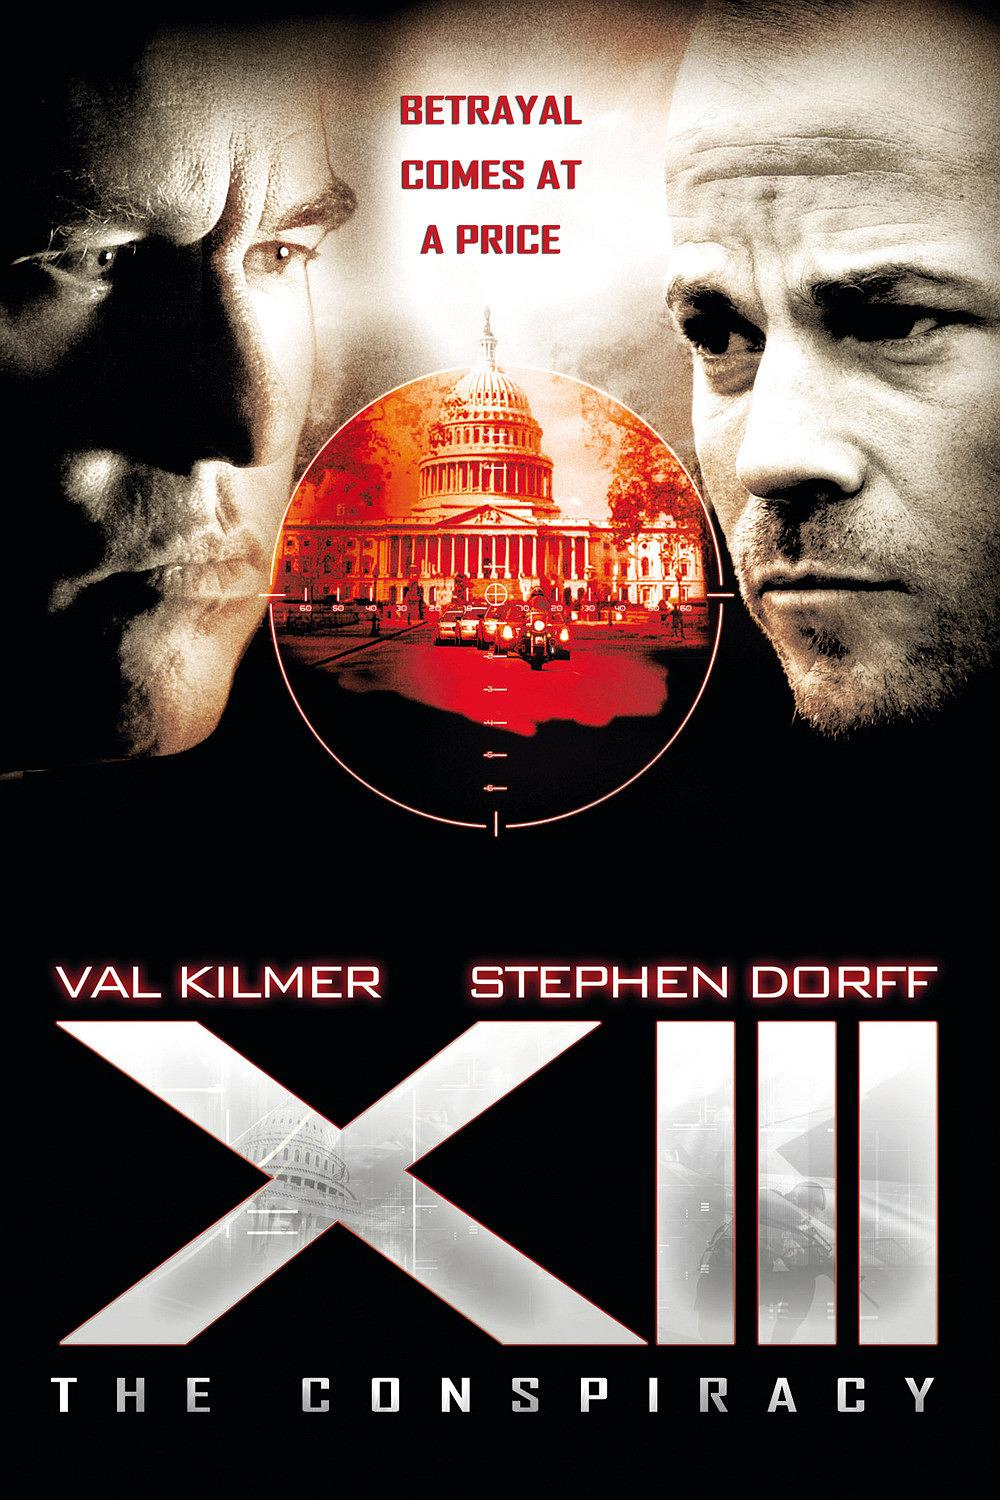 悠悠MP4_MP4电影下载_杀手十三:阴谋 XIII.The.Conspiracy.The.Movie.2008.1080p.BluRay.x264-RESiSTANCE 10.94GB